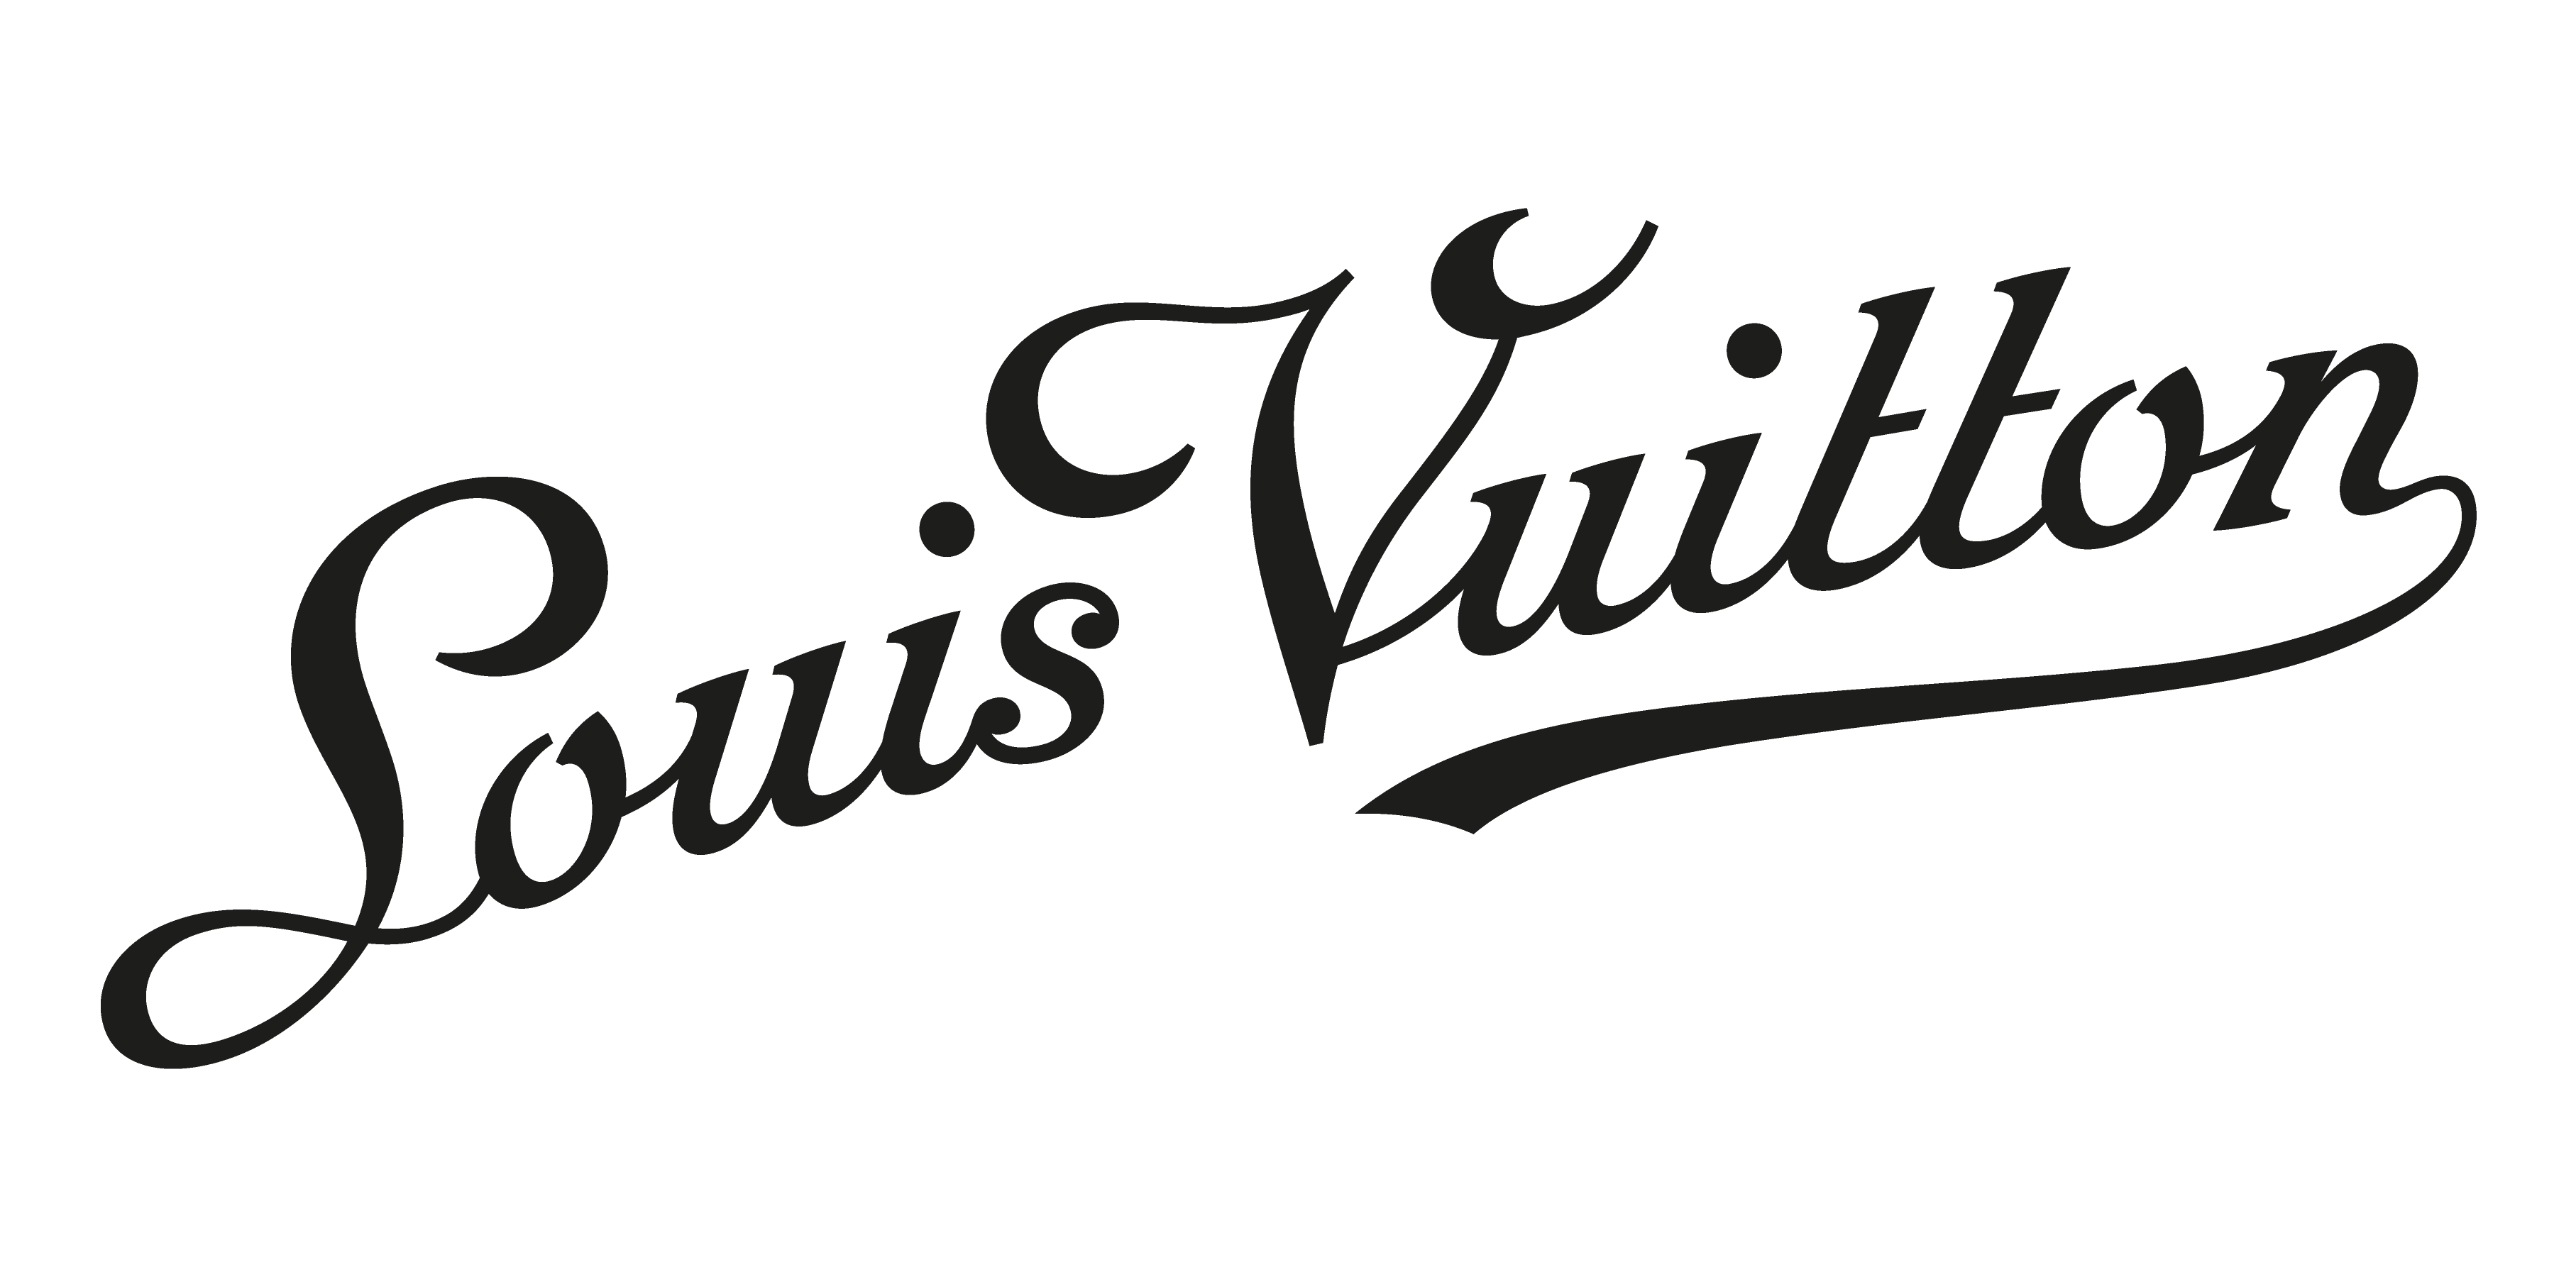 Louis Vuitton Logo - Louis Vuitton Script – ZeCraft